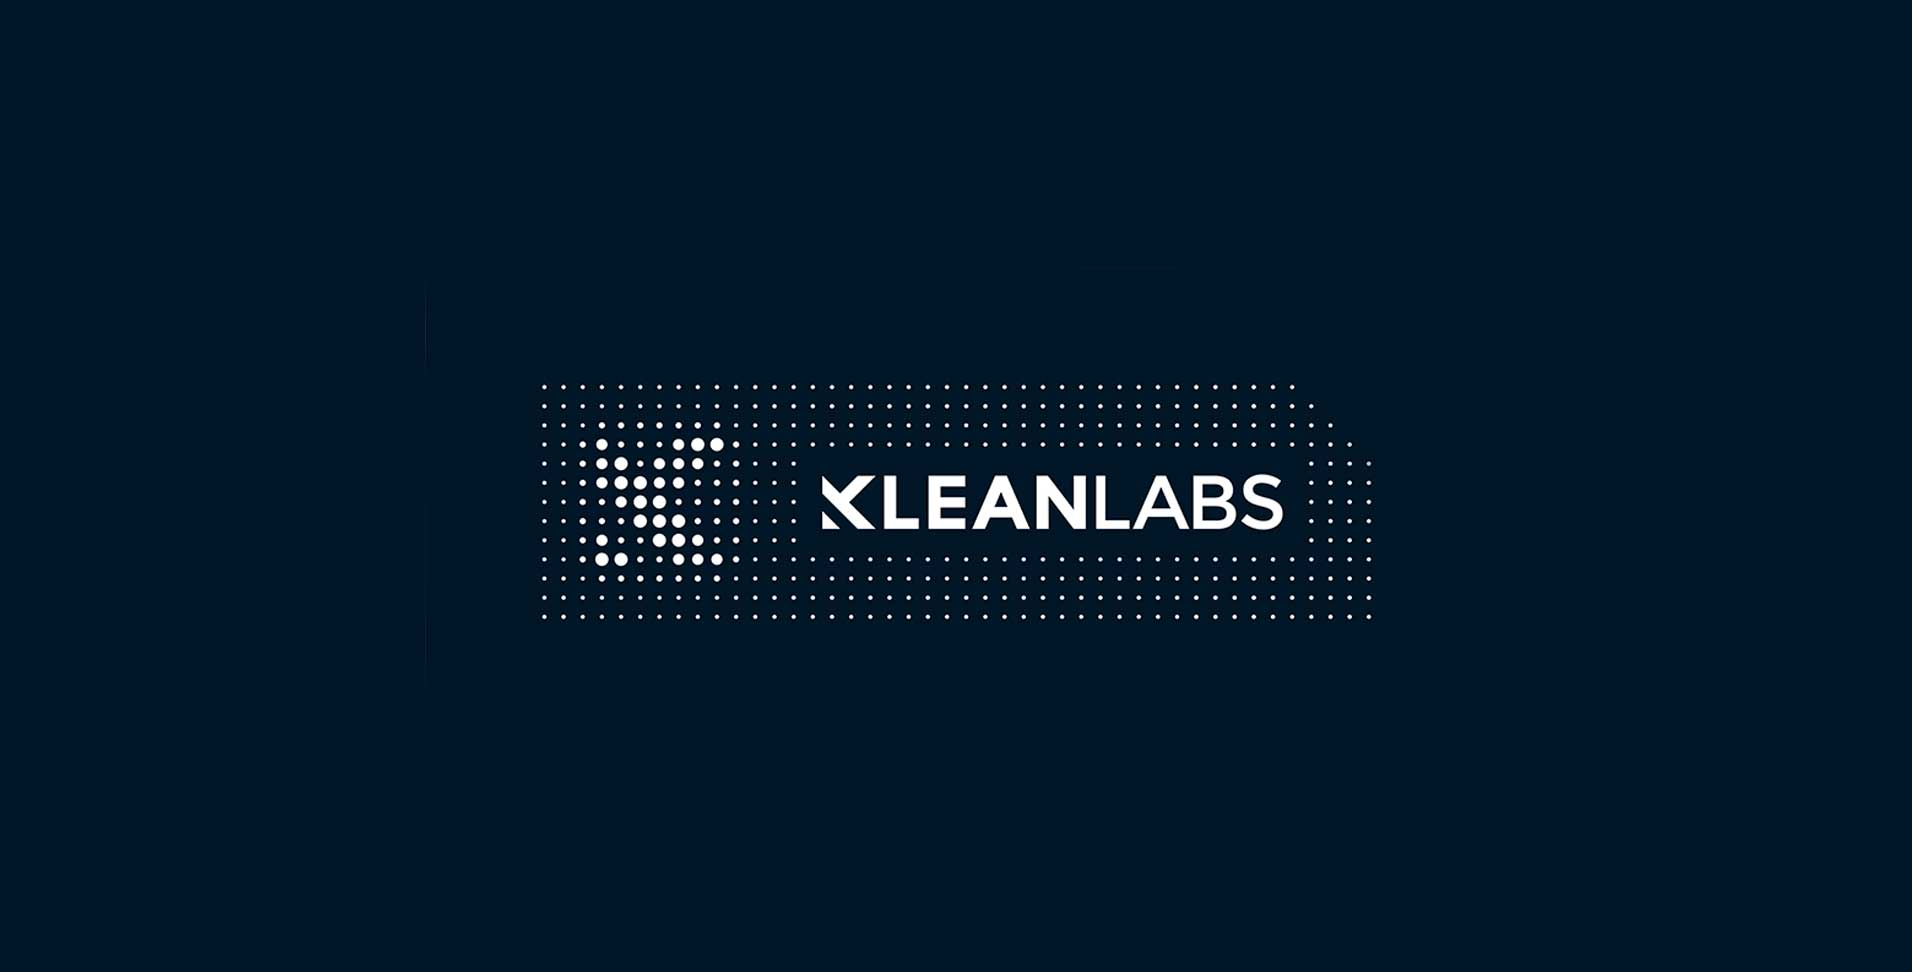 Introducing the Kleanlabs brand